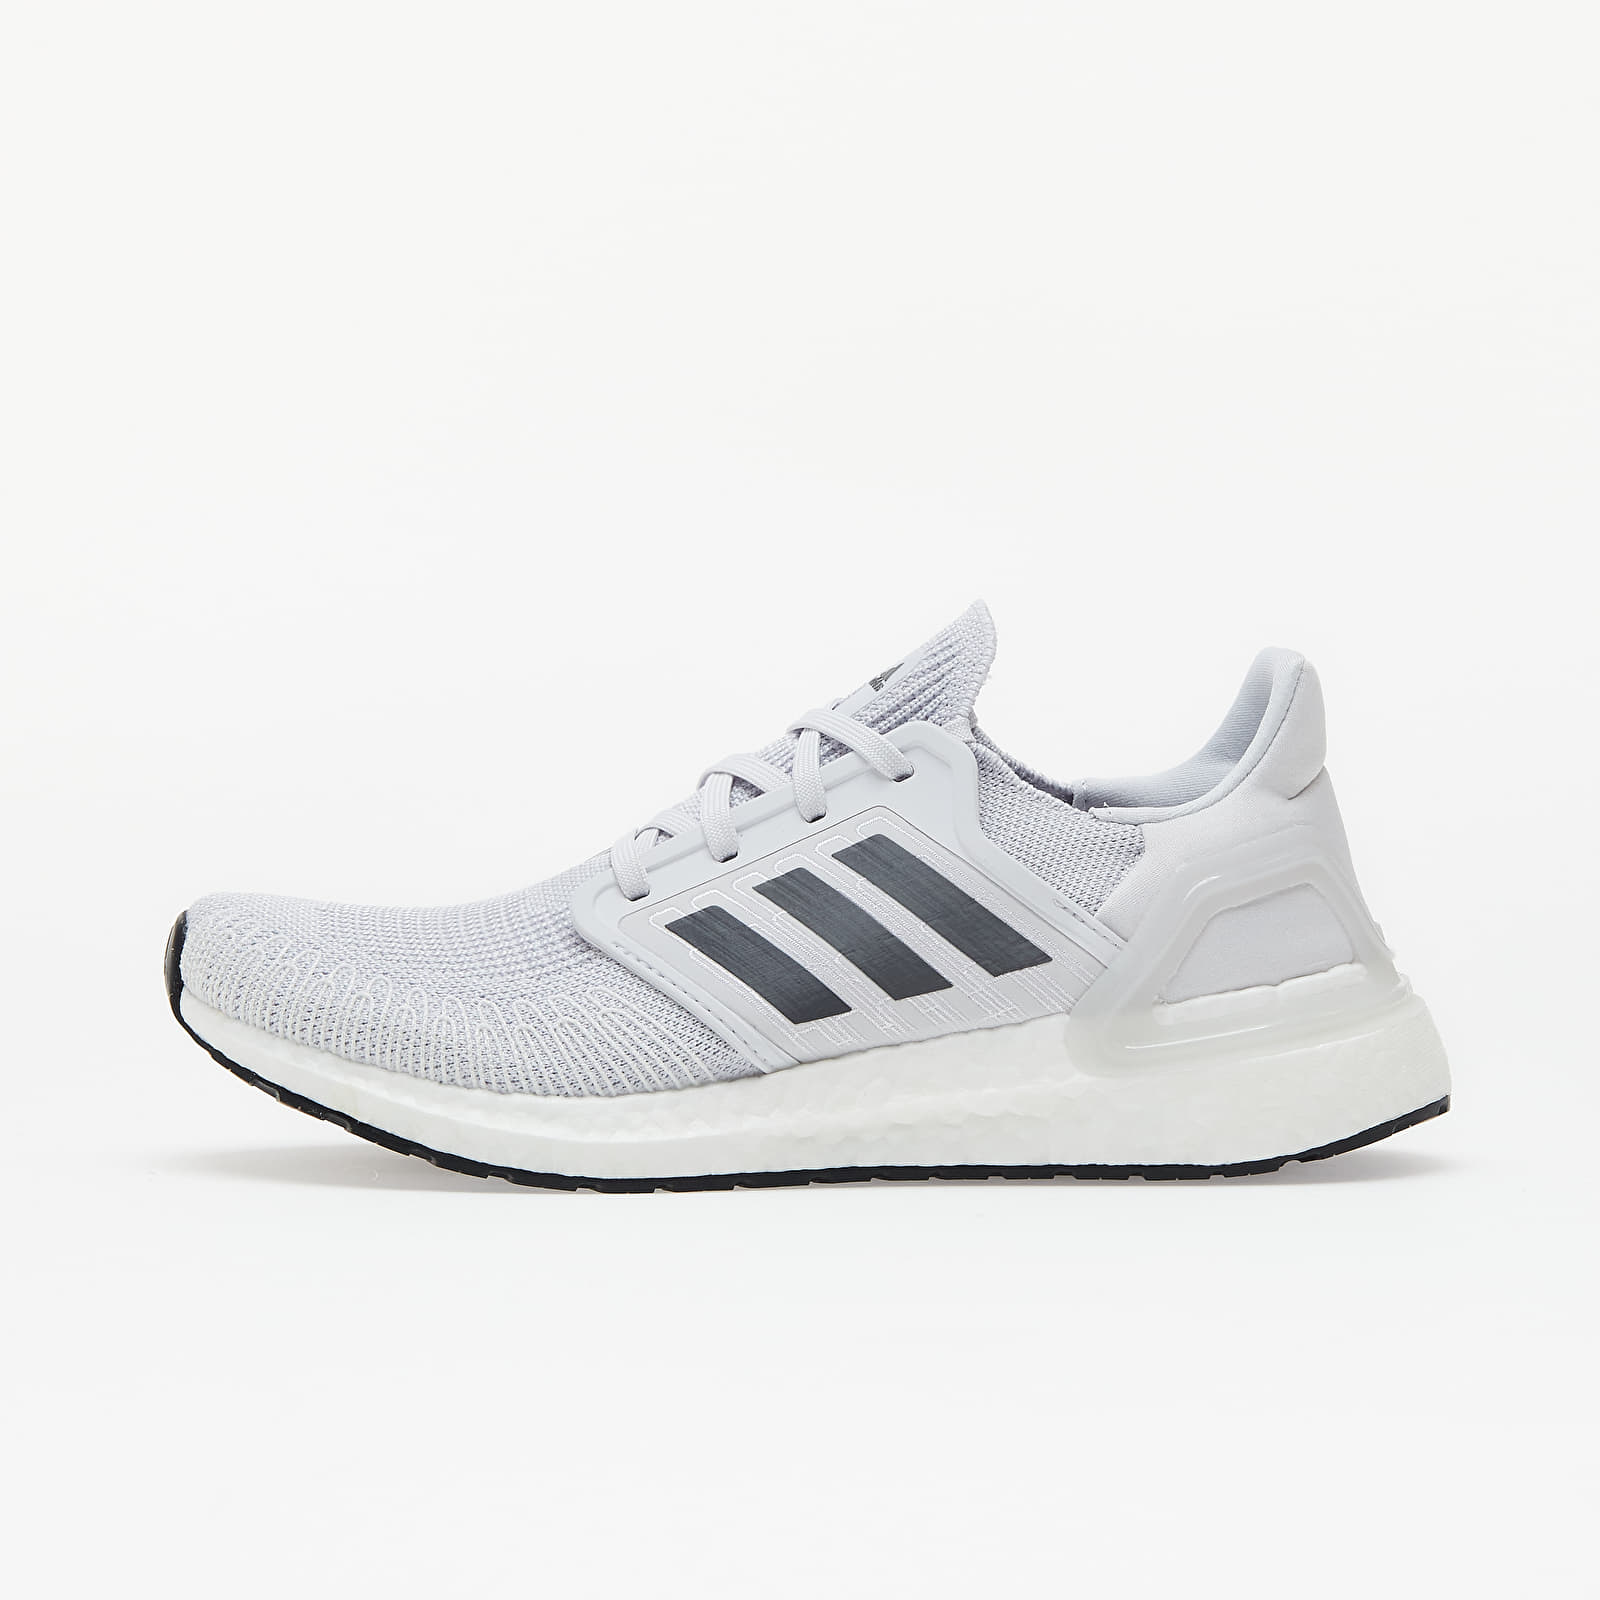 Men's shoes adidas UltraBOOST 20 Dash Grey/ Grey Five/ Solid Red